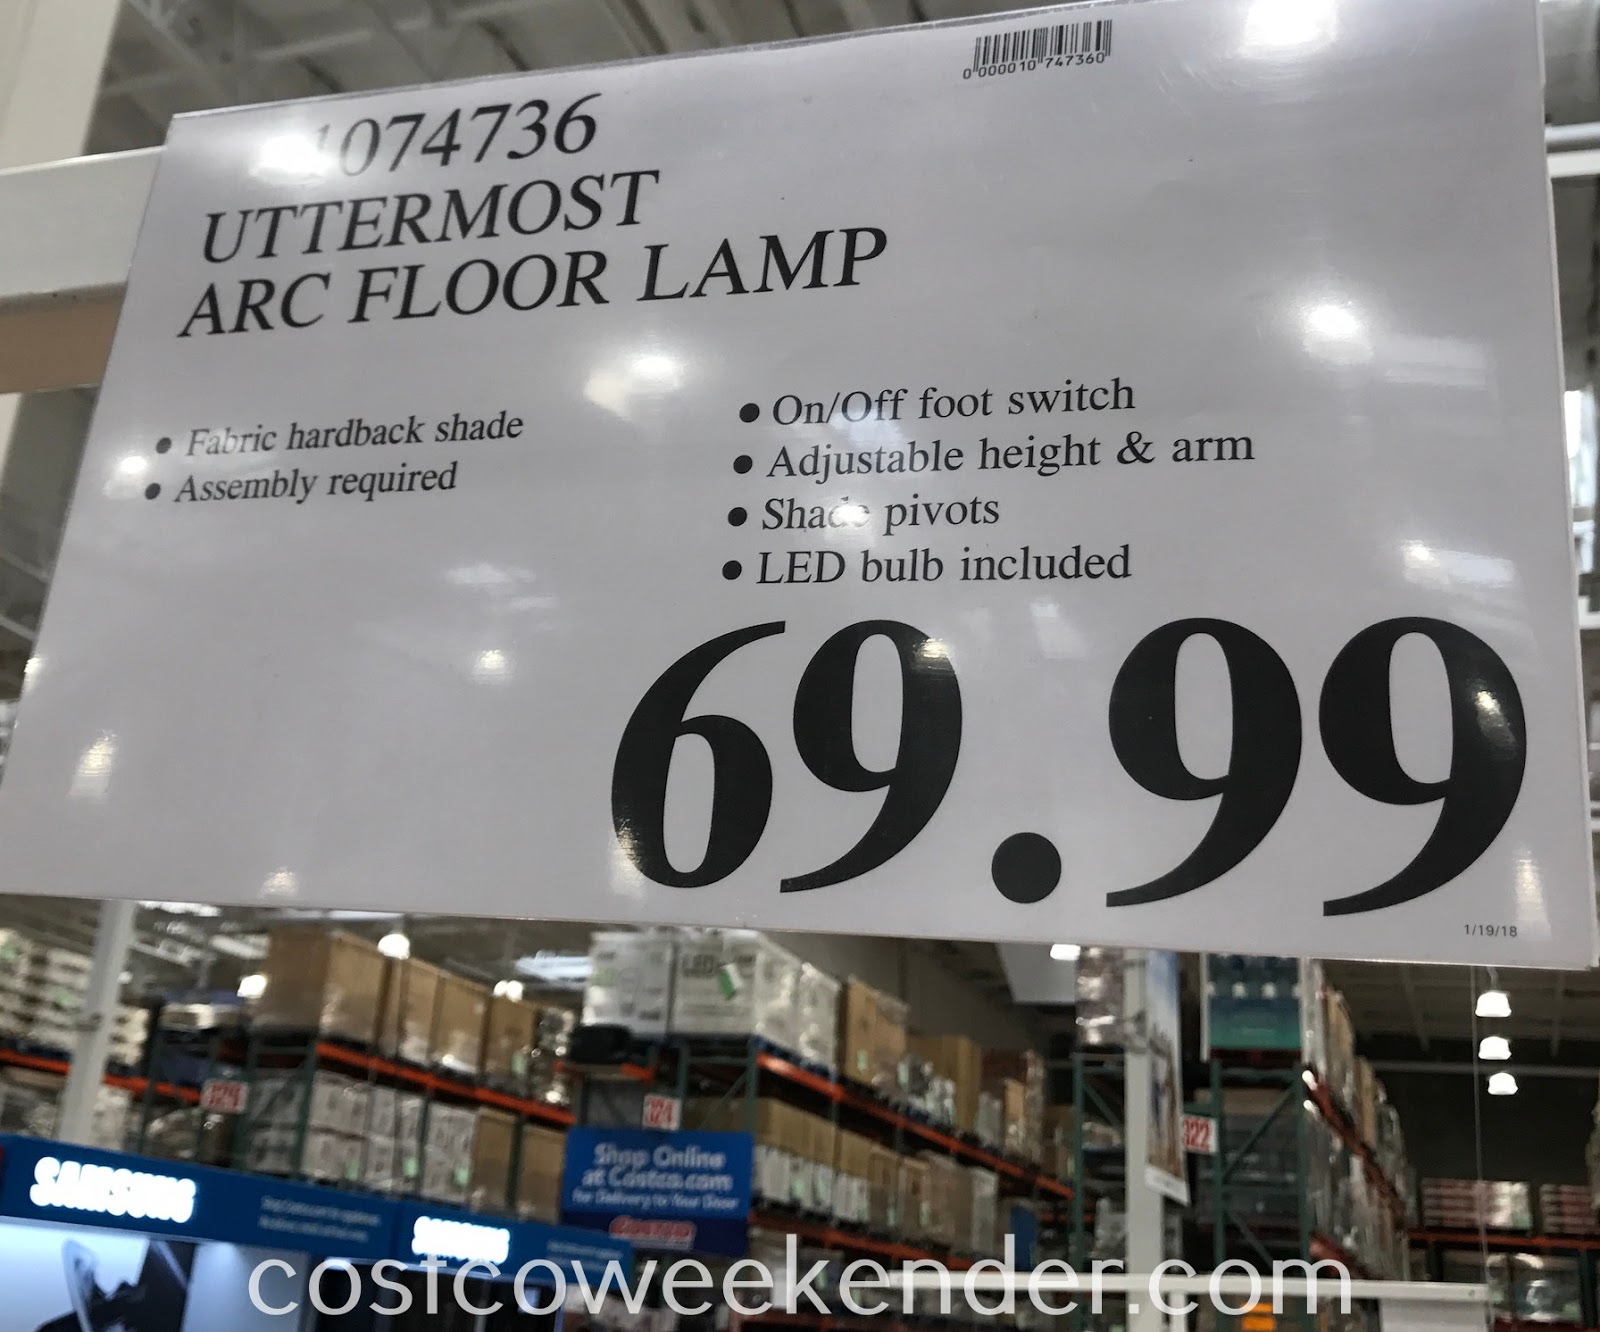 Deal for the Uttermost Arc Floor Lamp at Costco